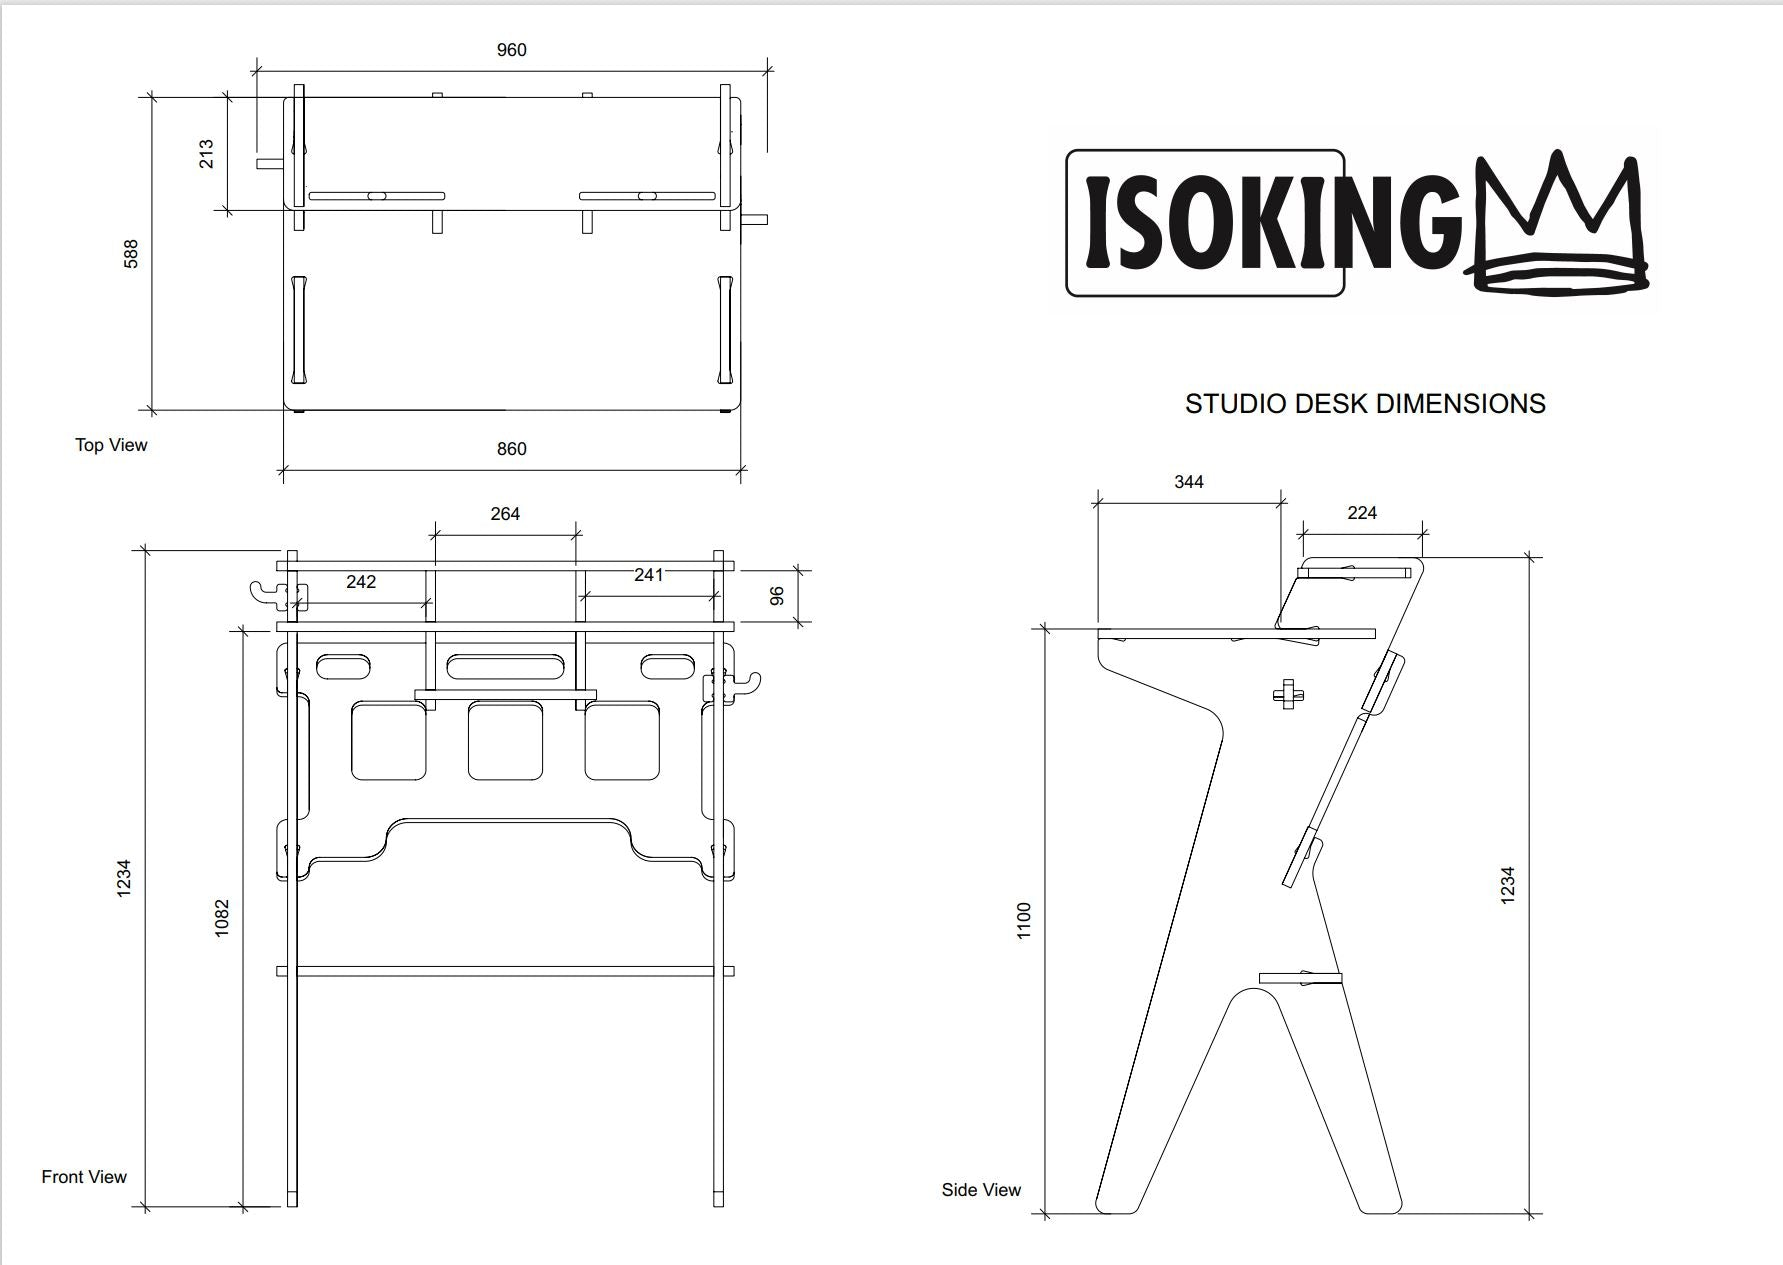 isoking, stagekings, studio desk,  Desk, work table, work desk, work from home, work station, hooks, cable storage, cable management, bag hook, device hook, device holder, ipad holder, iphone holder, solidwood, solid birch, ply, plywood, birch, table, writing des, stand up desk, standing desk, standing workstation,